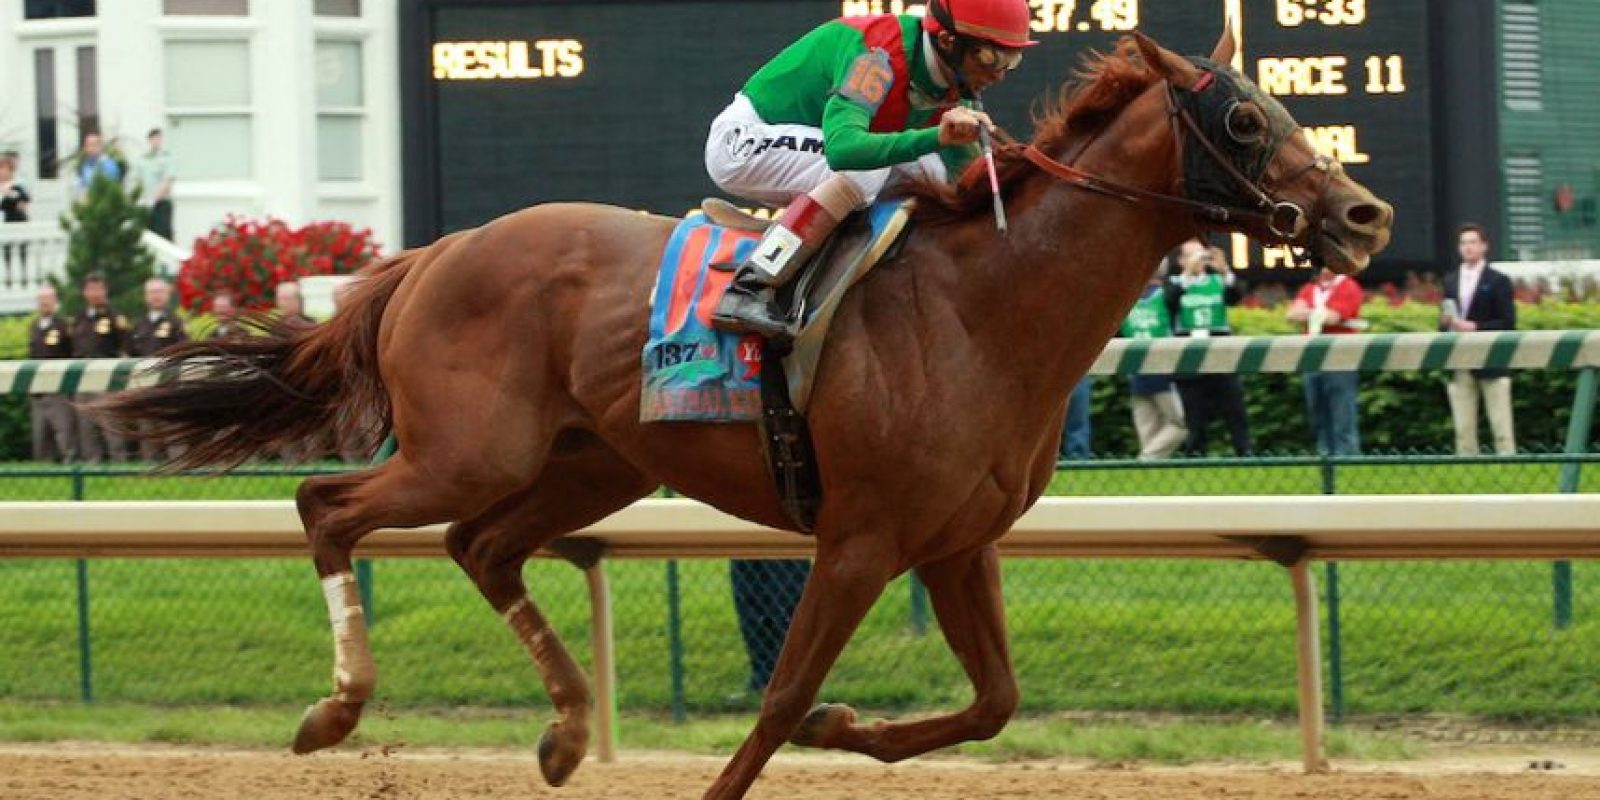 Derby de Kentucky – Louisville, Kentucky, Estados Unidos. Foto: Getty Images